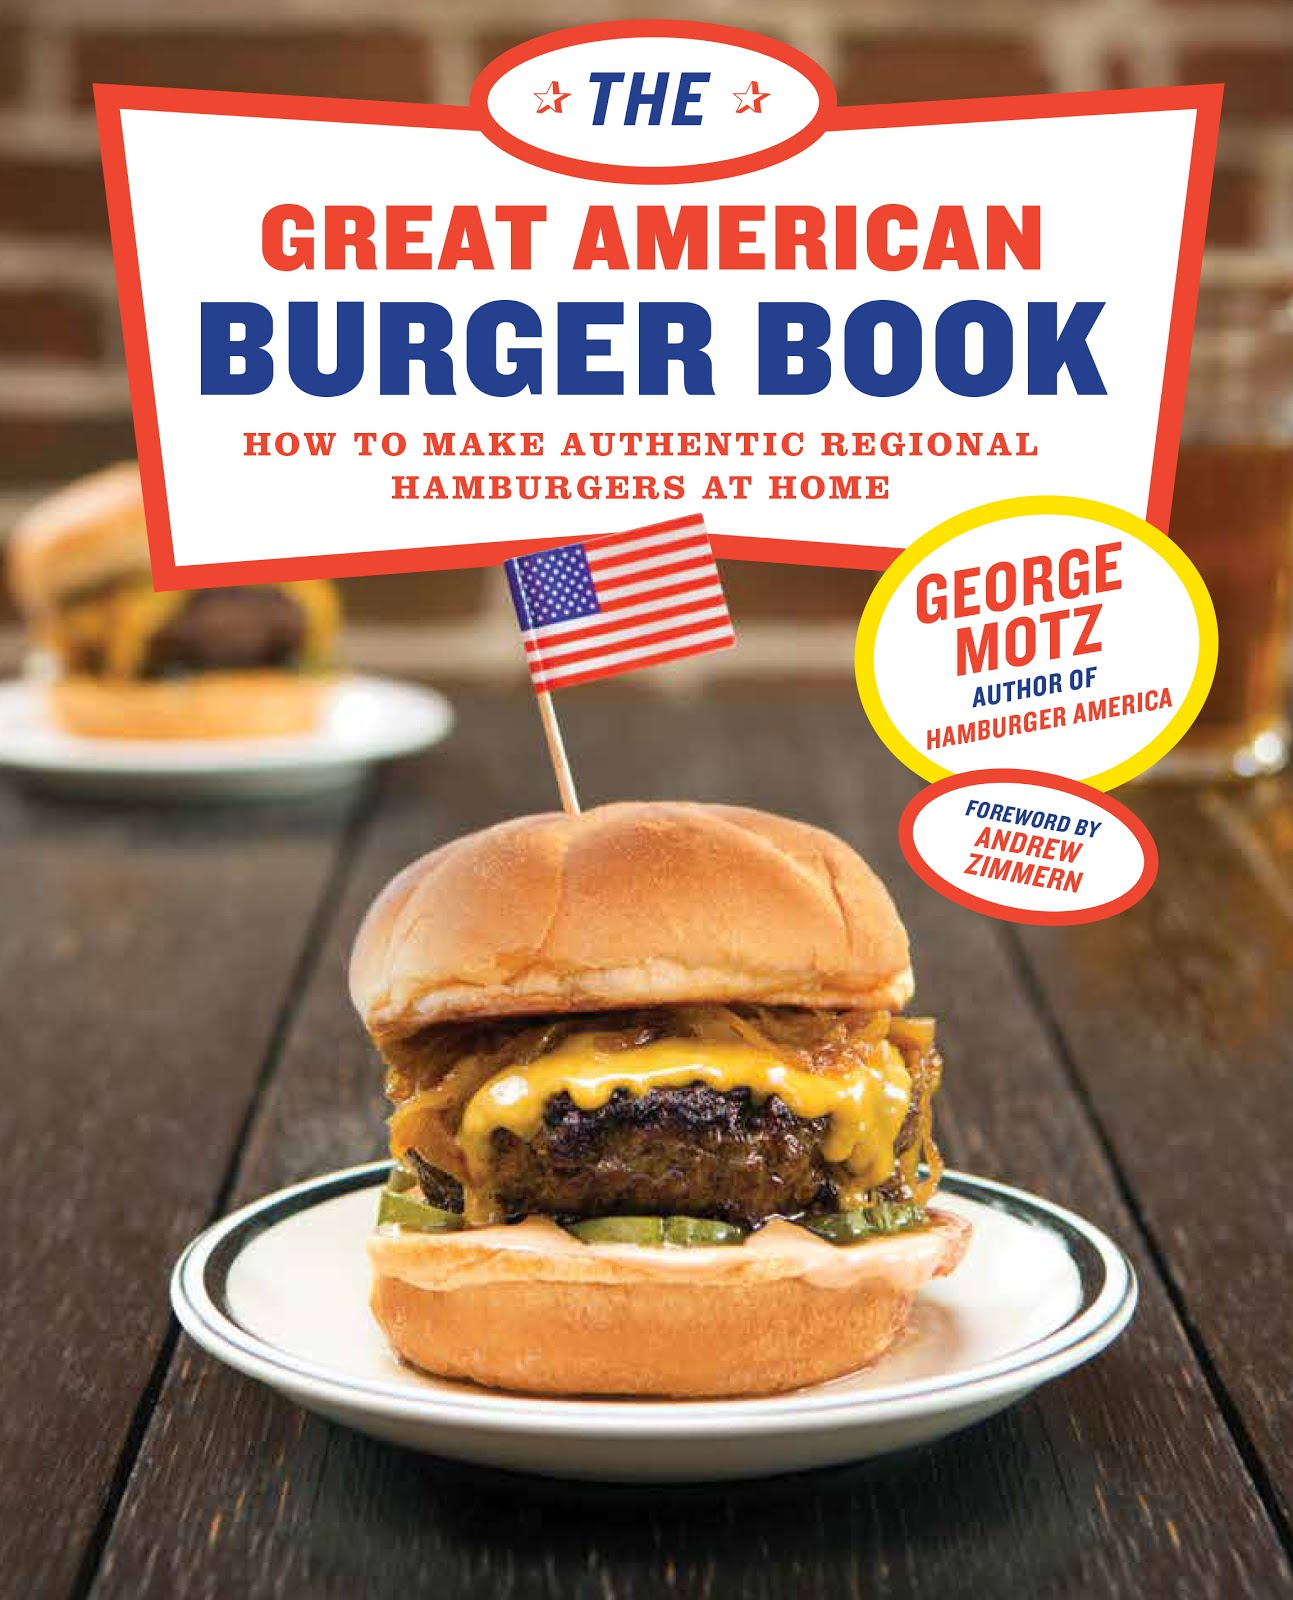 Book Launch: The Great American Burger Book by George Motz In conversation with Nick Solares